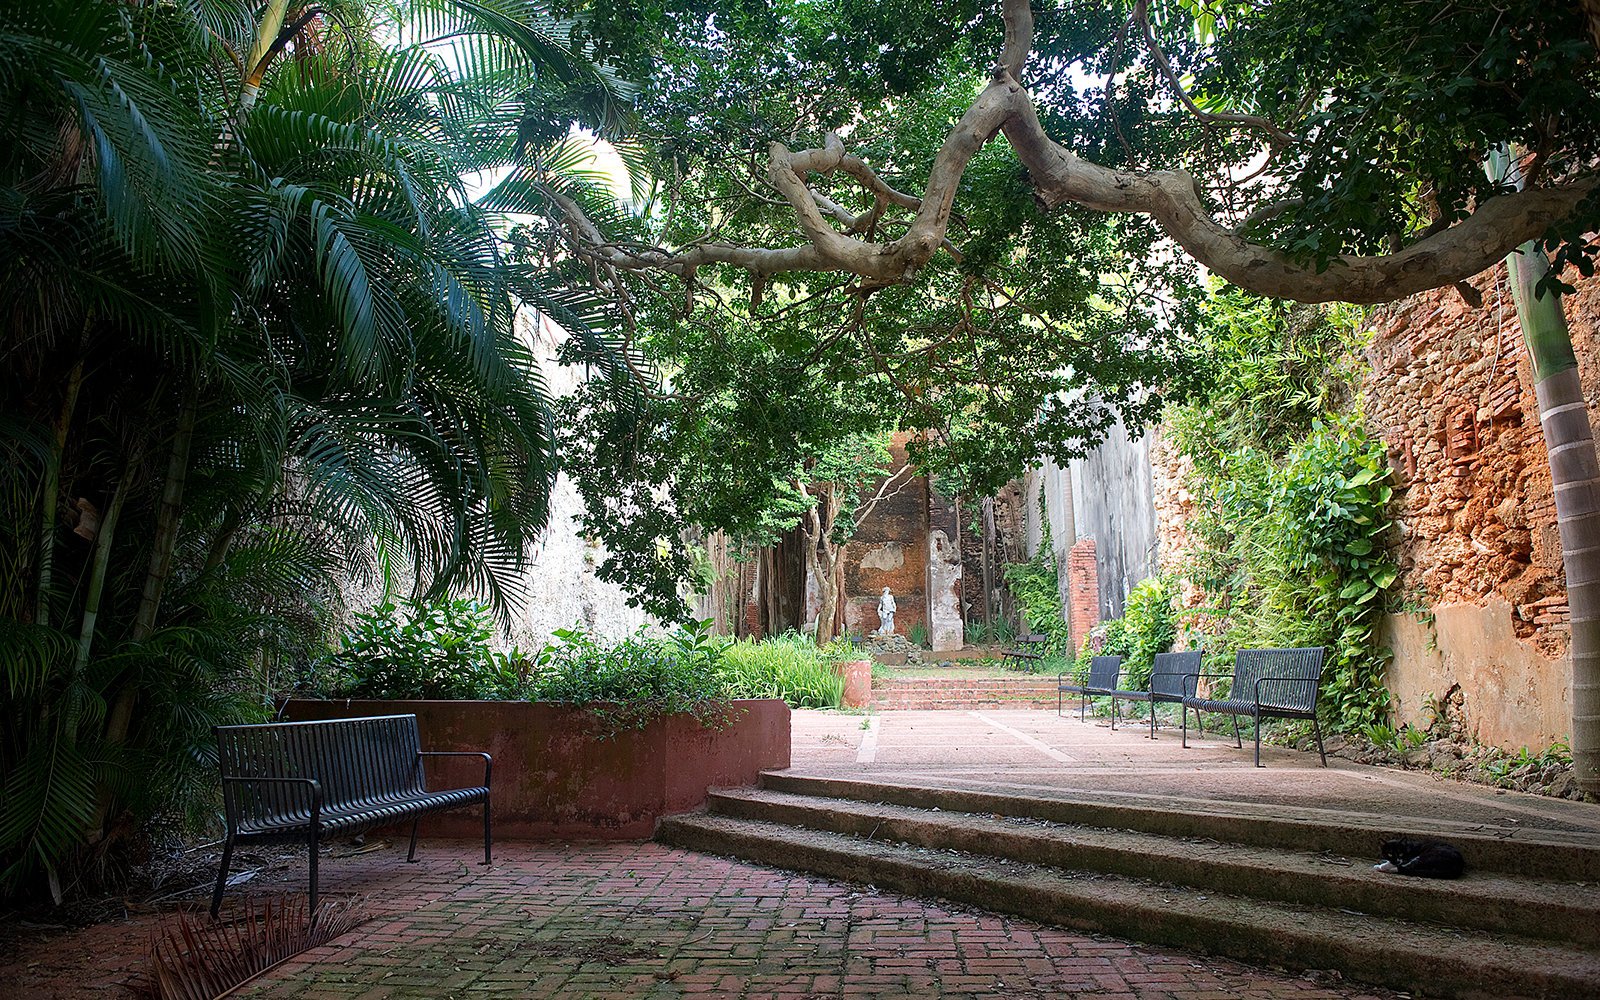 SAN JUAN, PUERTO RICO - JUNE 06:  A small classical garden between colonial buildings in Old San Juan (viejo San Juan) on June 6, 2012 in San Juan, Puerto Rico. (Photo by Alfredo Sosa/The Christian Science Monitor via Getty Images)